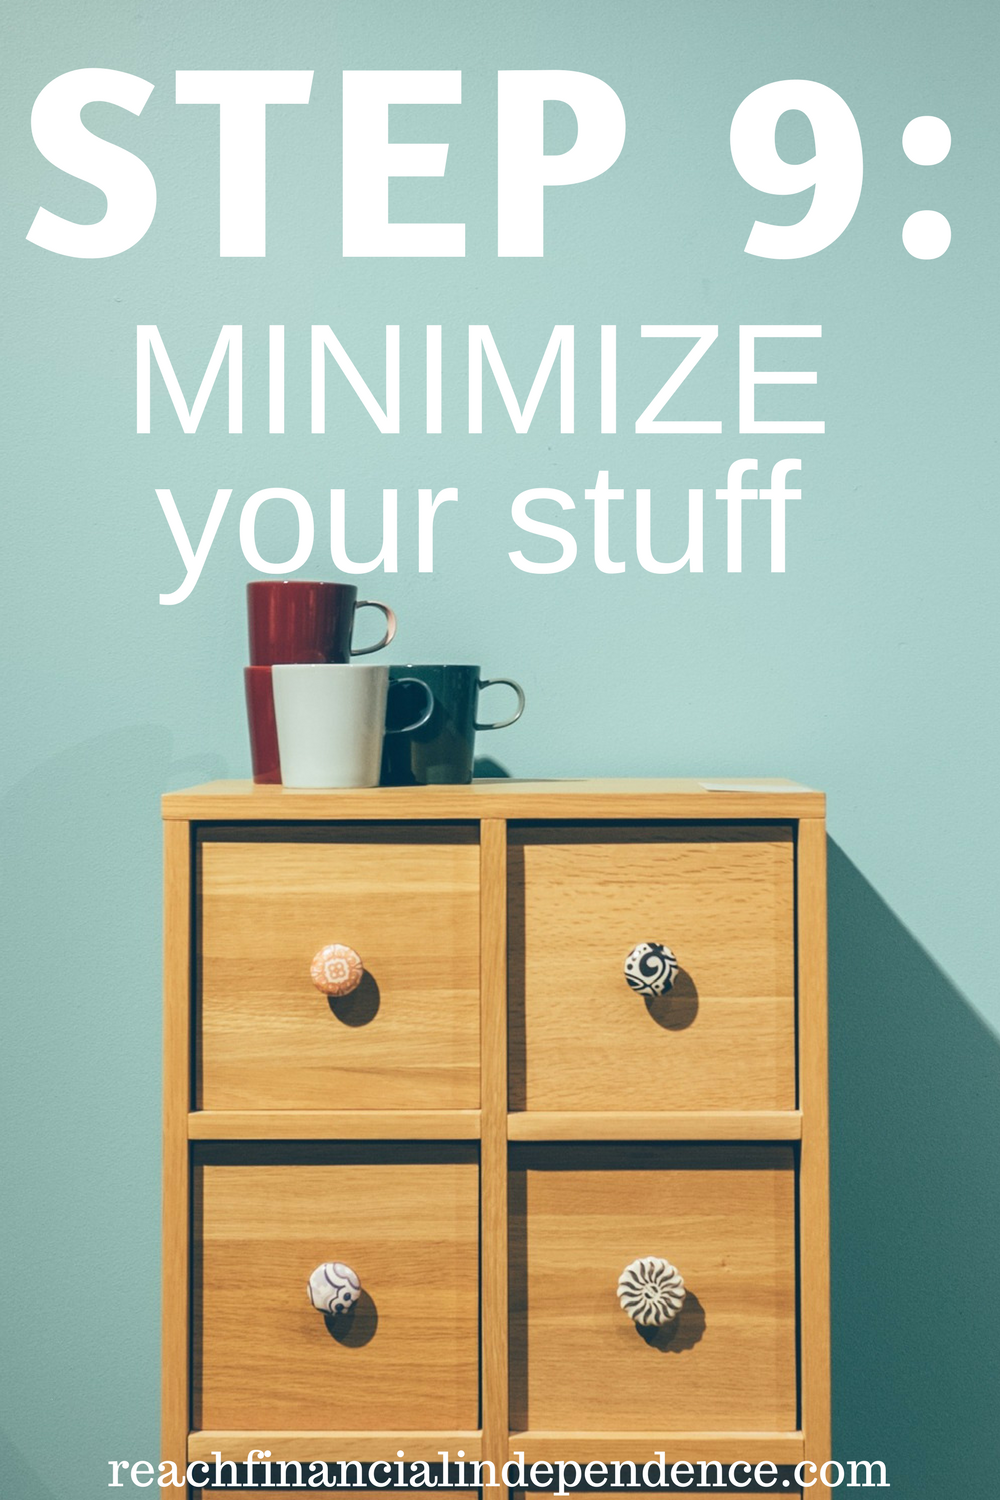 STEP 9: MINIMIZE YOUR STUFF